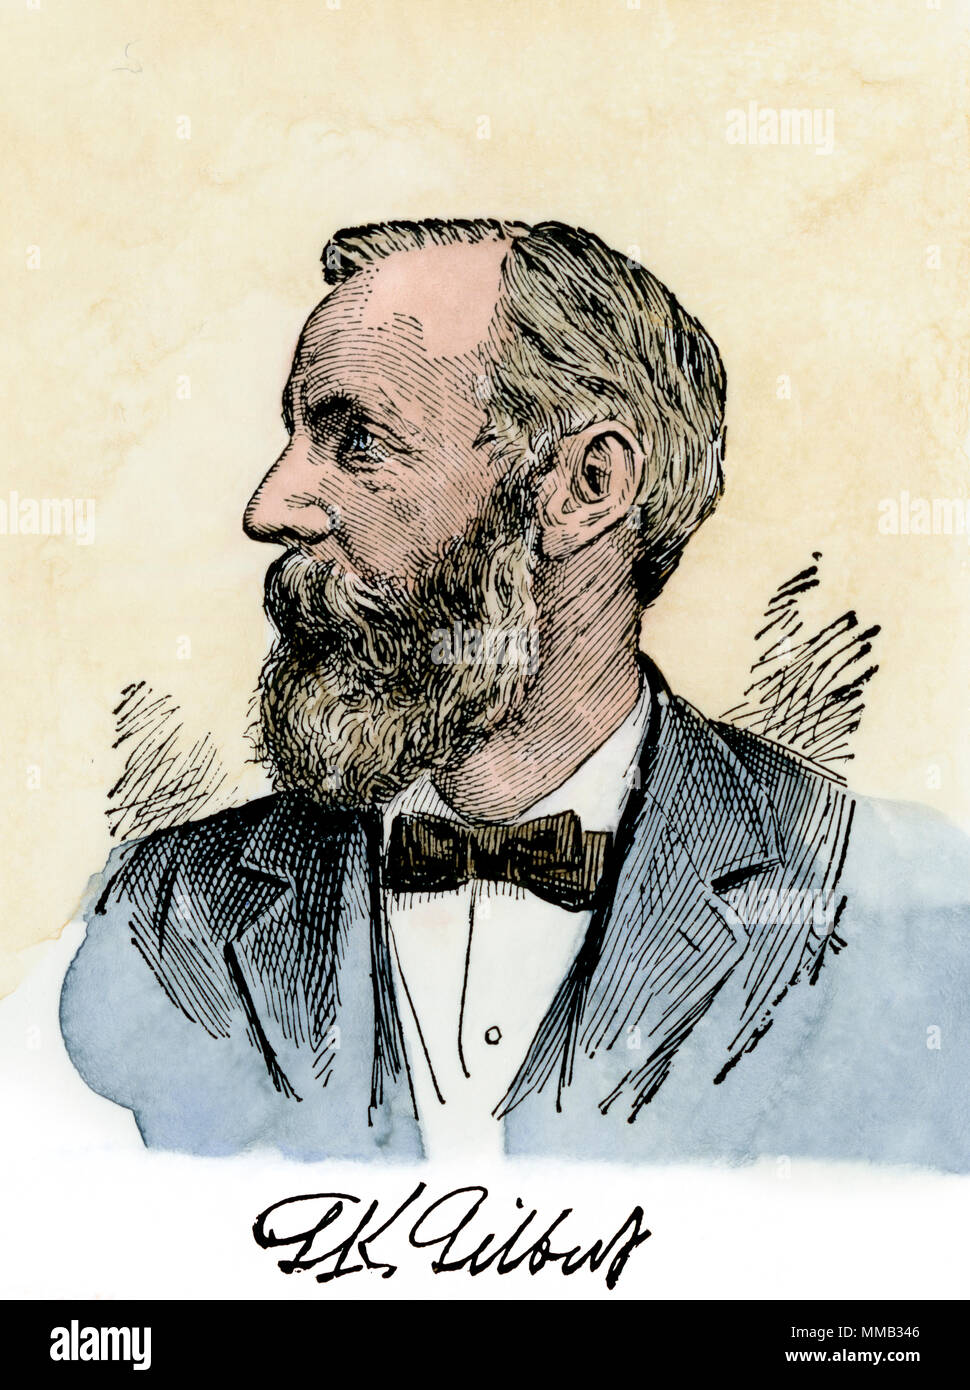 Grove Karl Gilbert, chief of US Geologic Survey in the late 1800s. Hand-colored woodcut - Stock Image